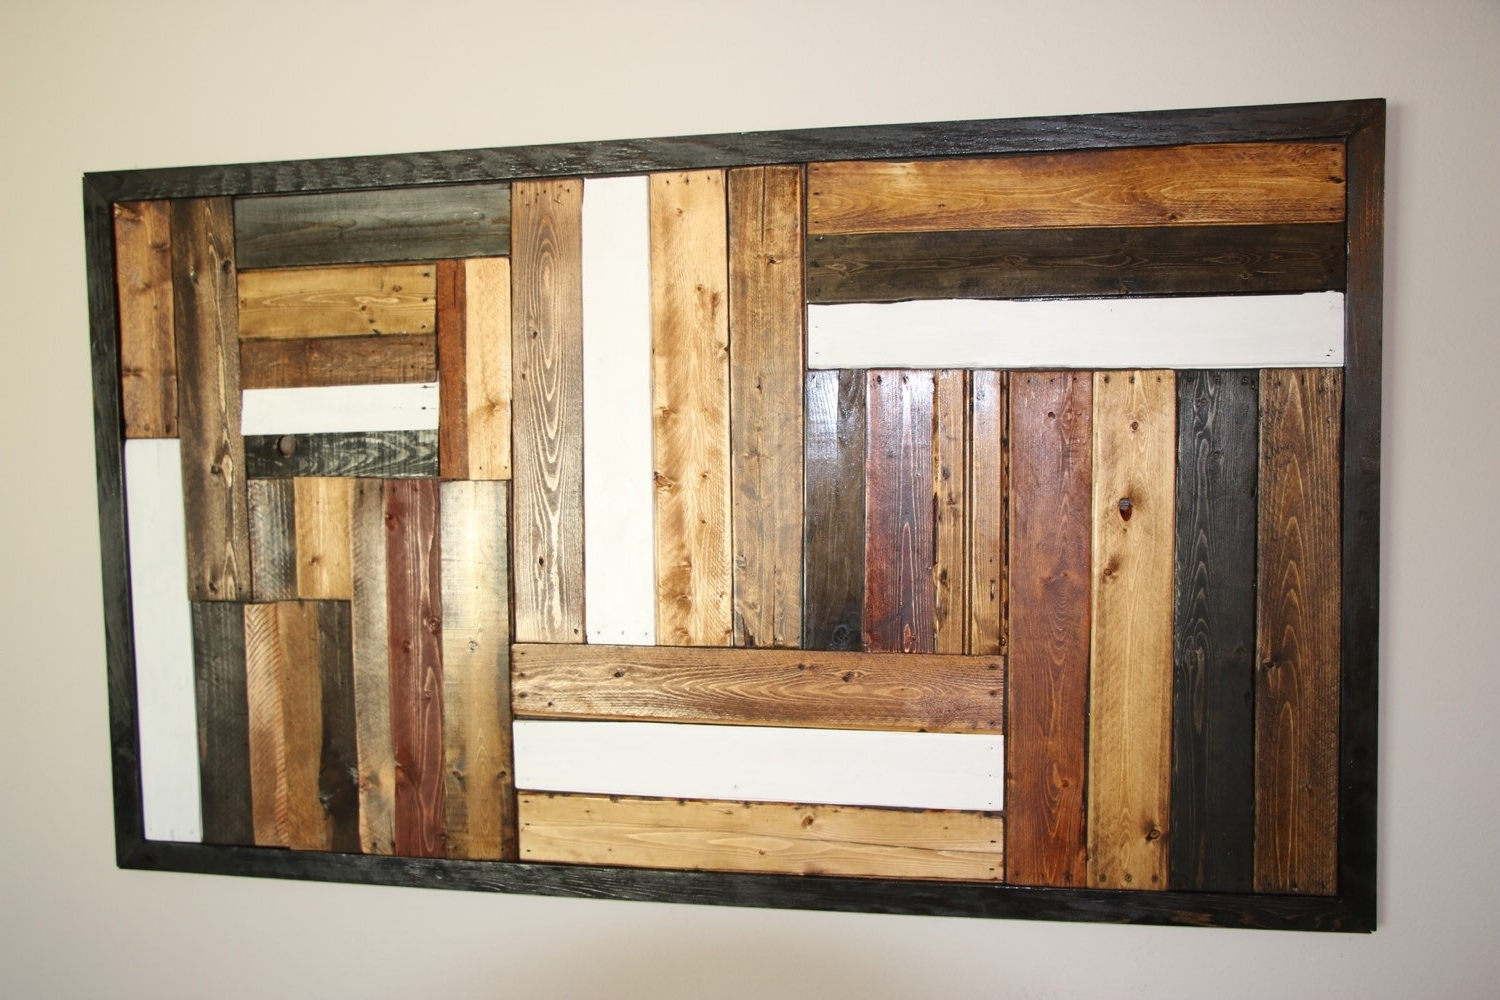 Recycled Pallet Wall Art Pallet Furniture Plans, Tables Pallet Art With Recent Pallet Wall Art (View 12 of 15)